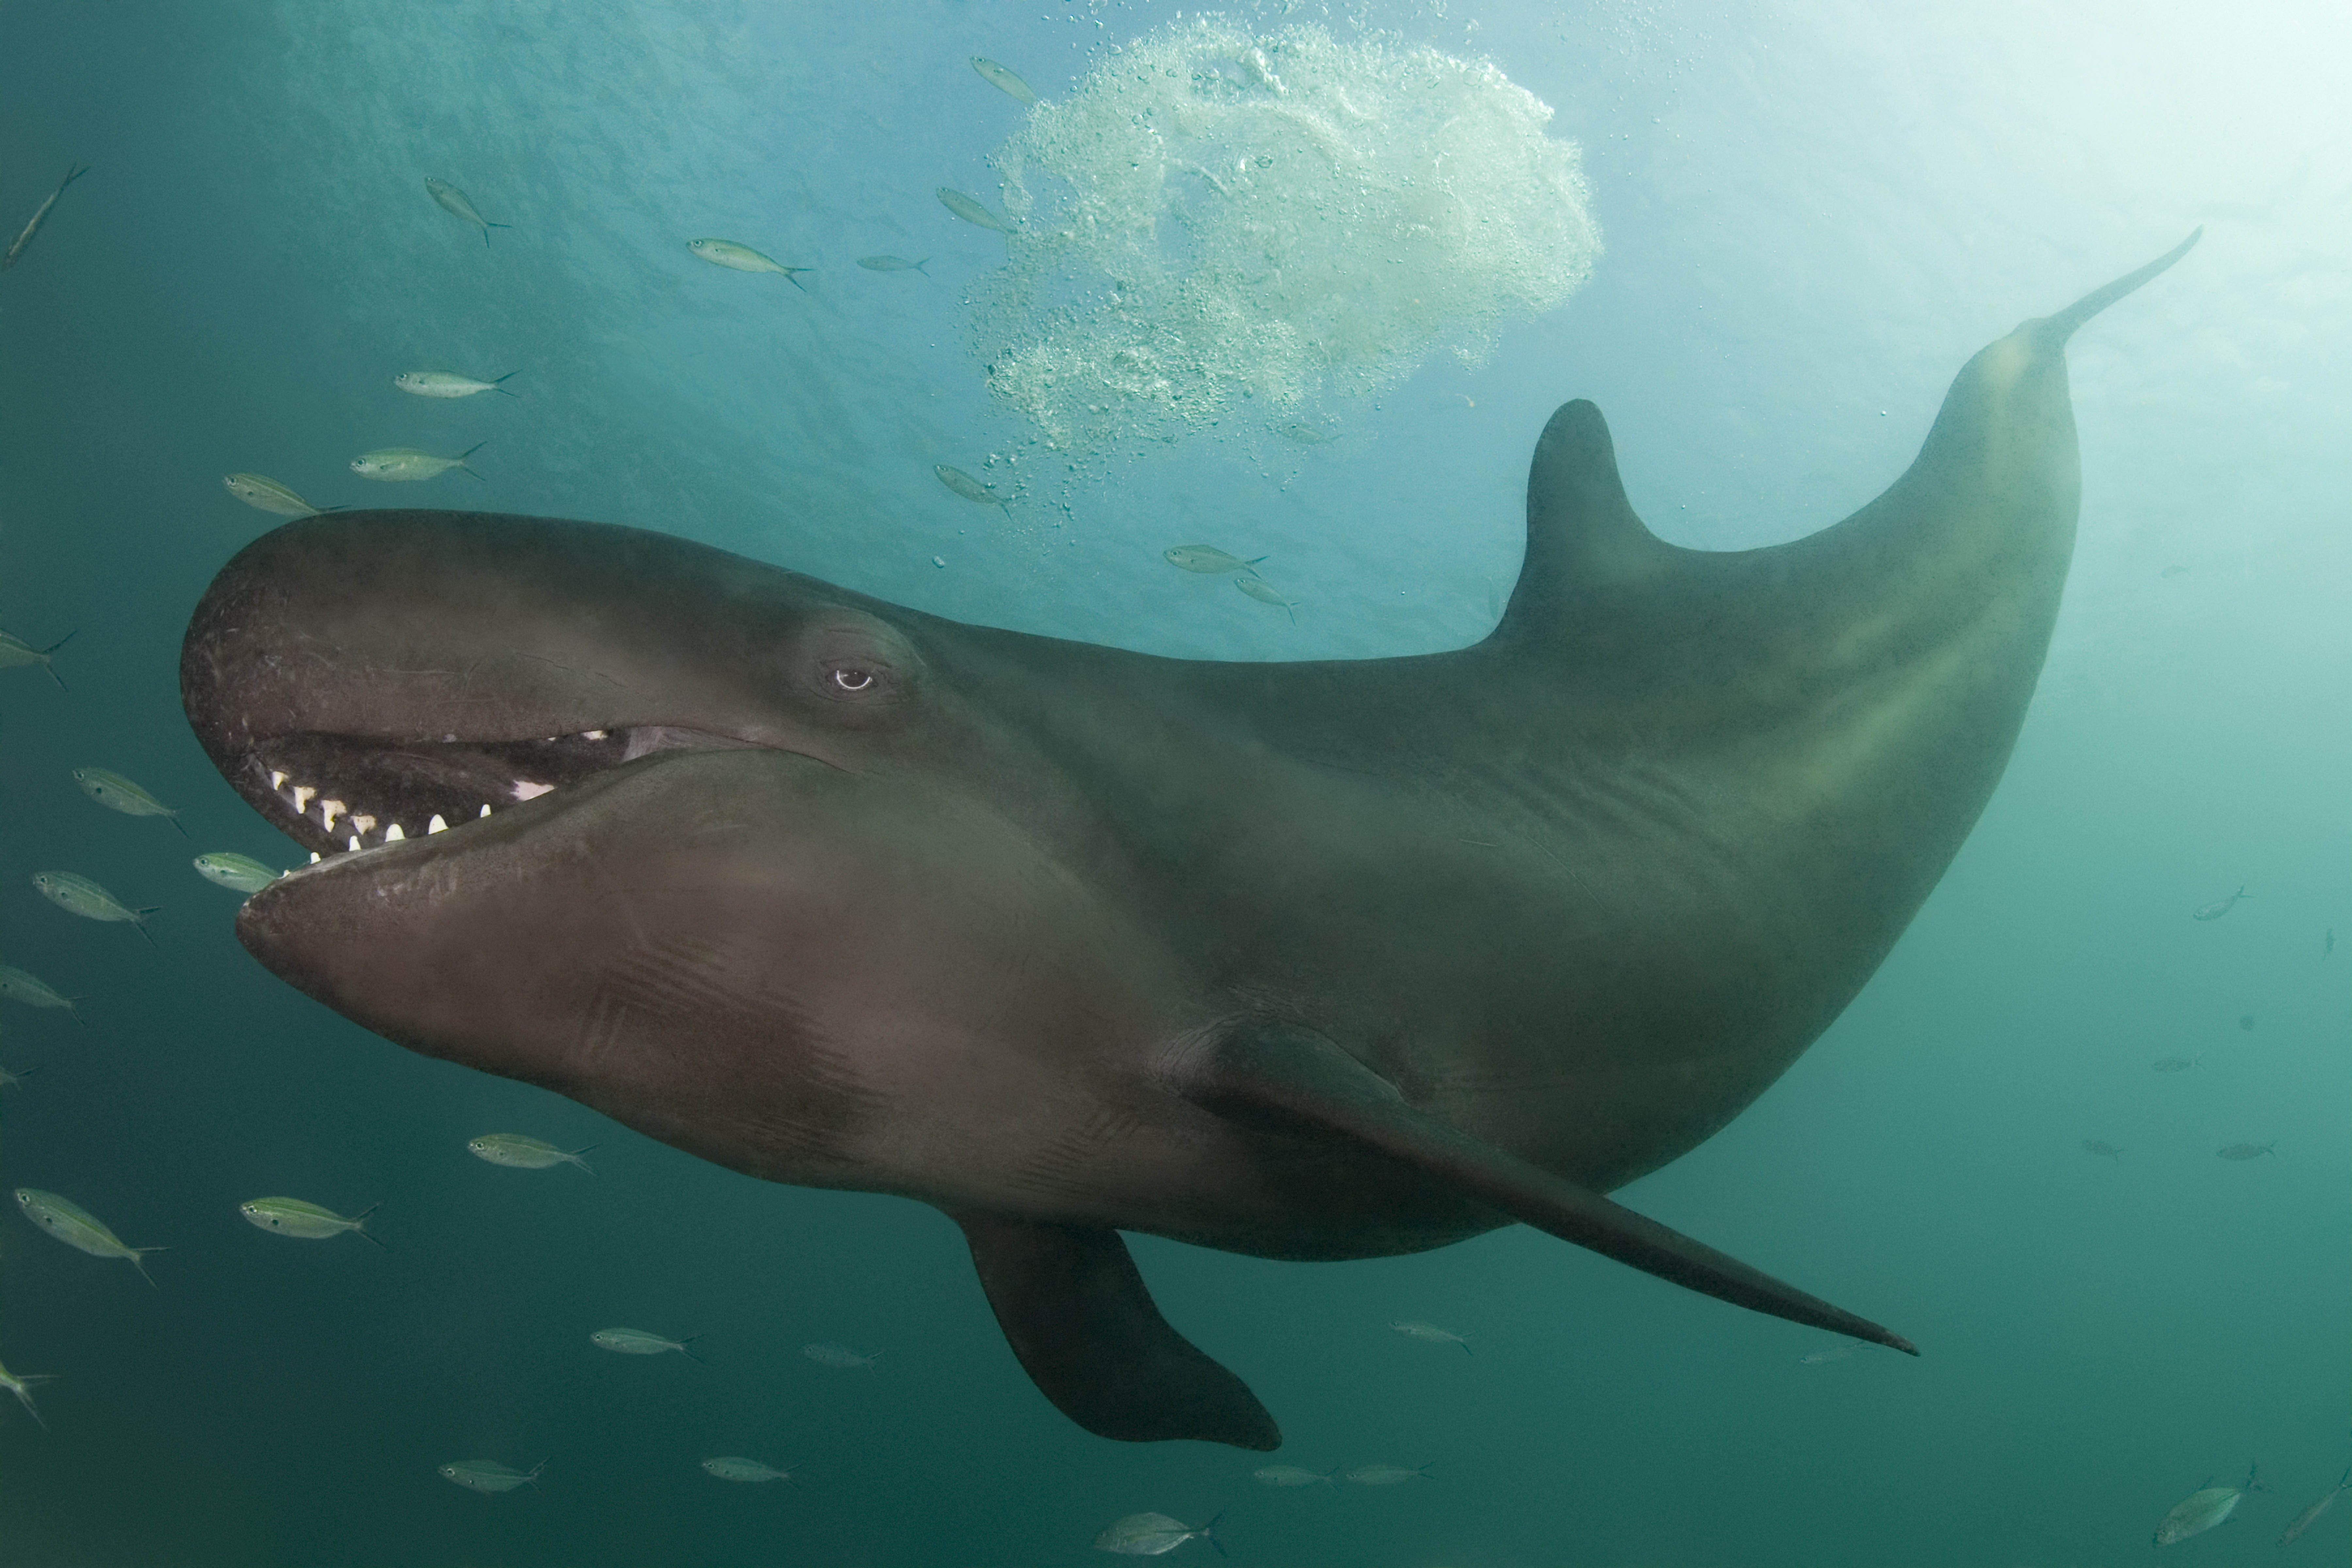 False killer whale 'grins' while hunting